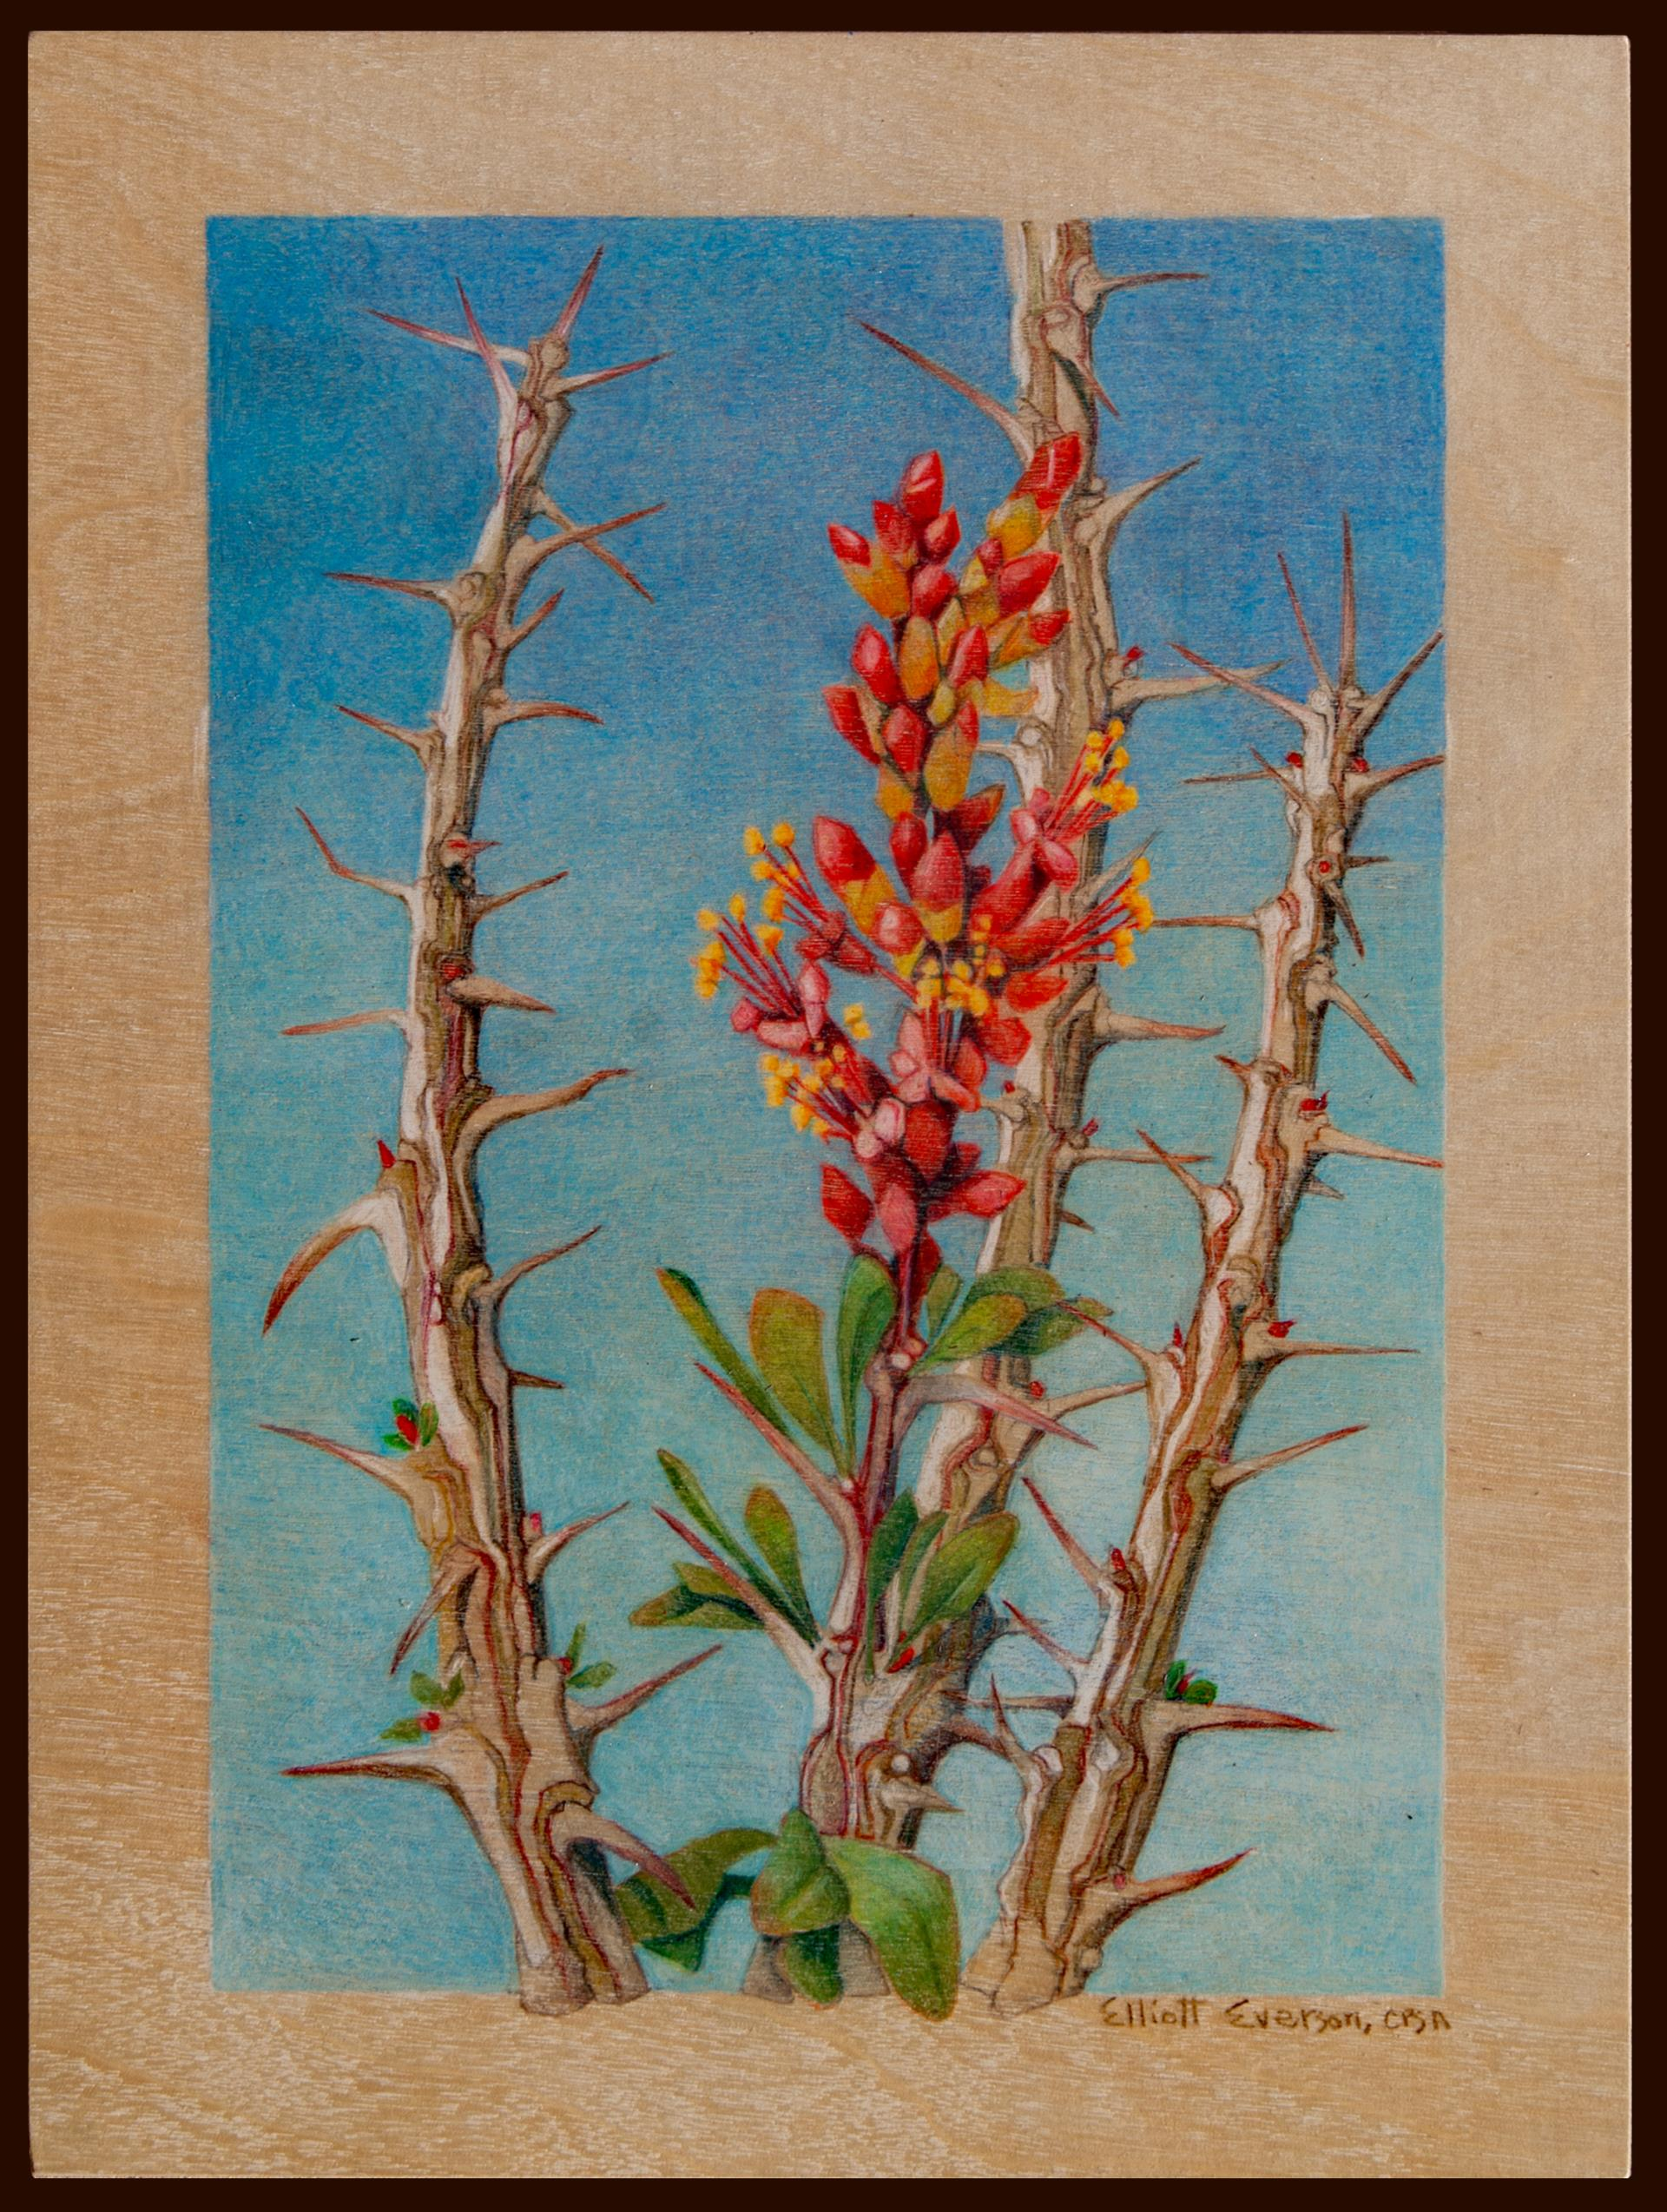 35b Elliott Everson - Ocotillo Trio - color pencil on wood - 2nd Place